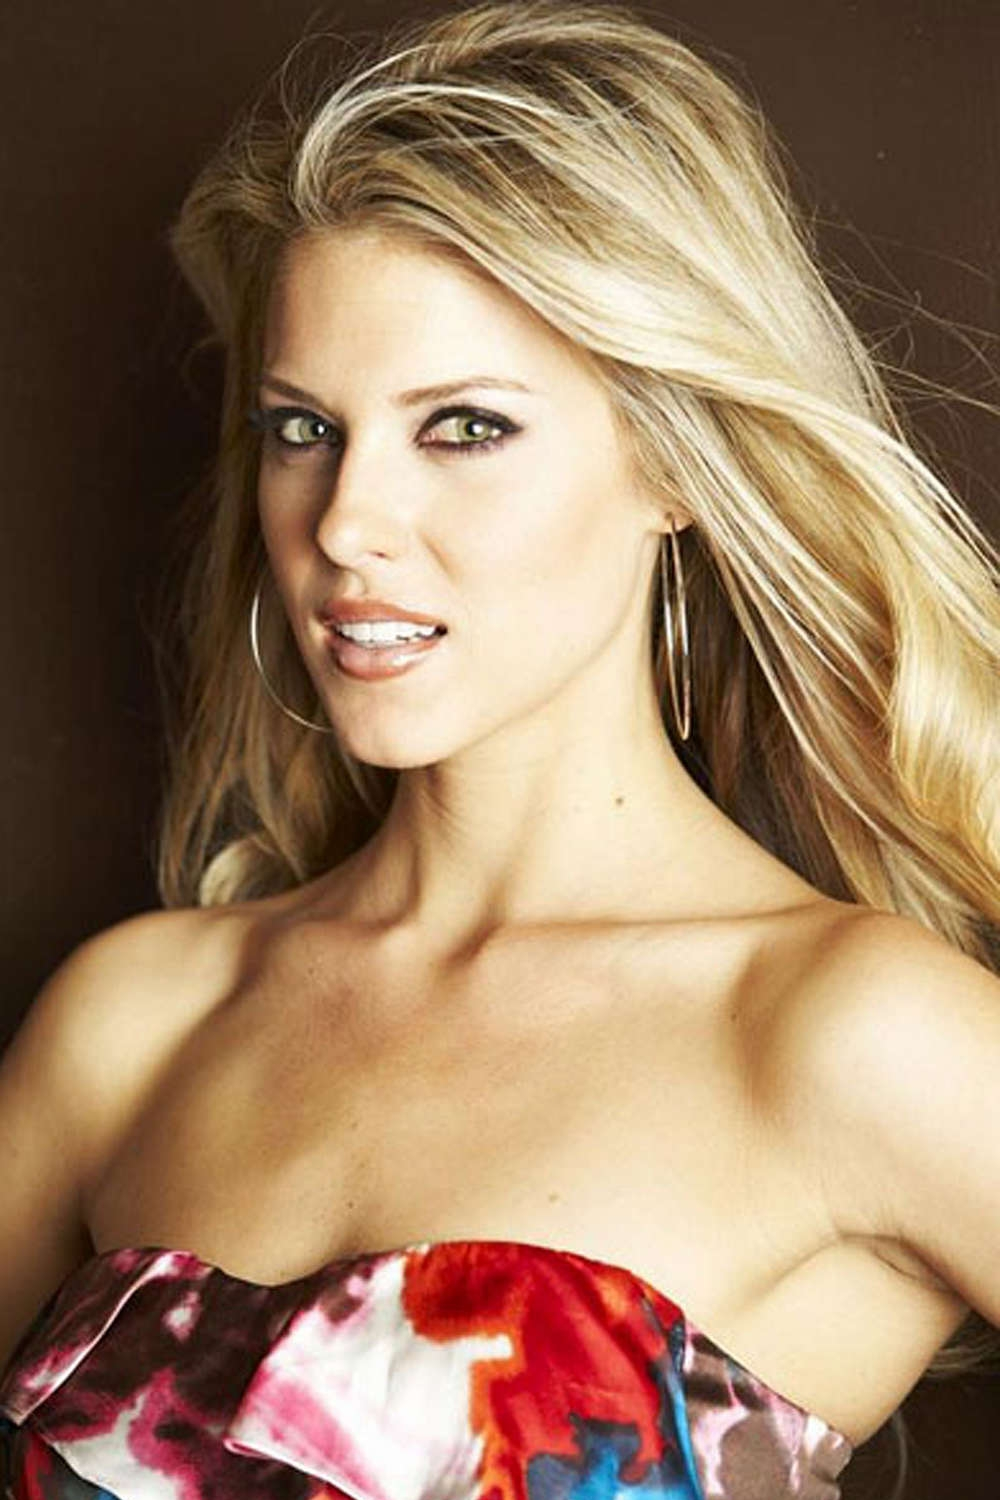 Carrie prejean racy photos Breaking Celeb News, Entertainment News, and Celebrity